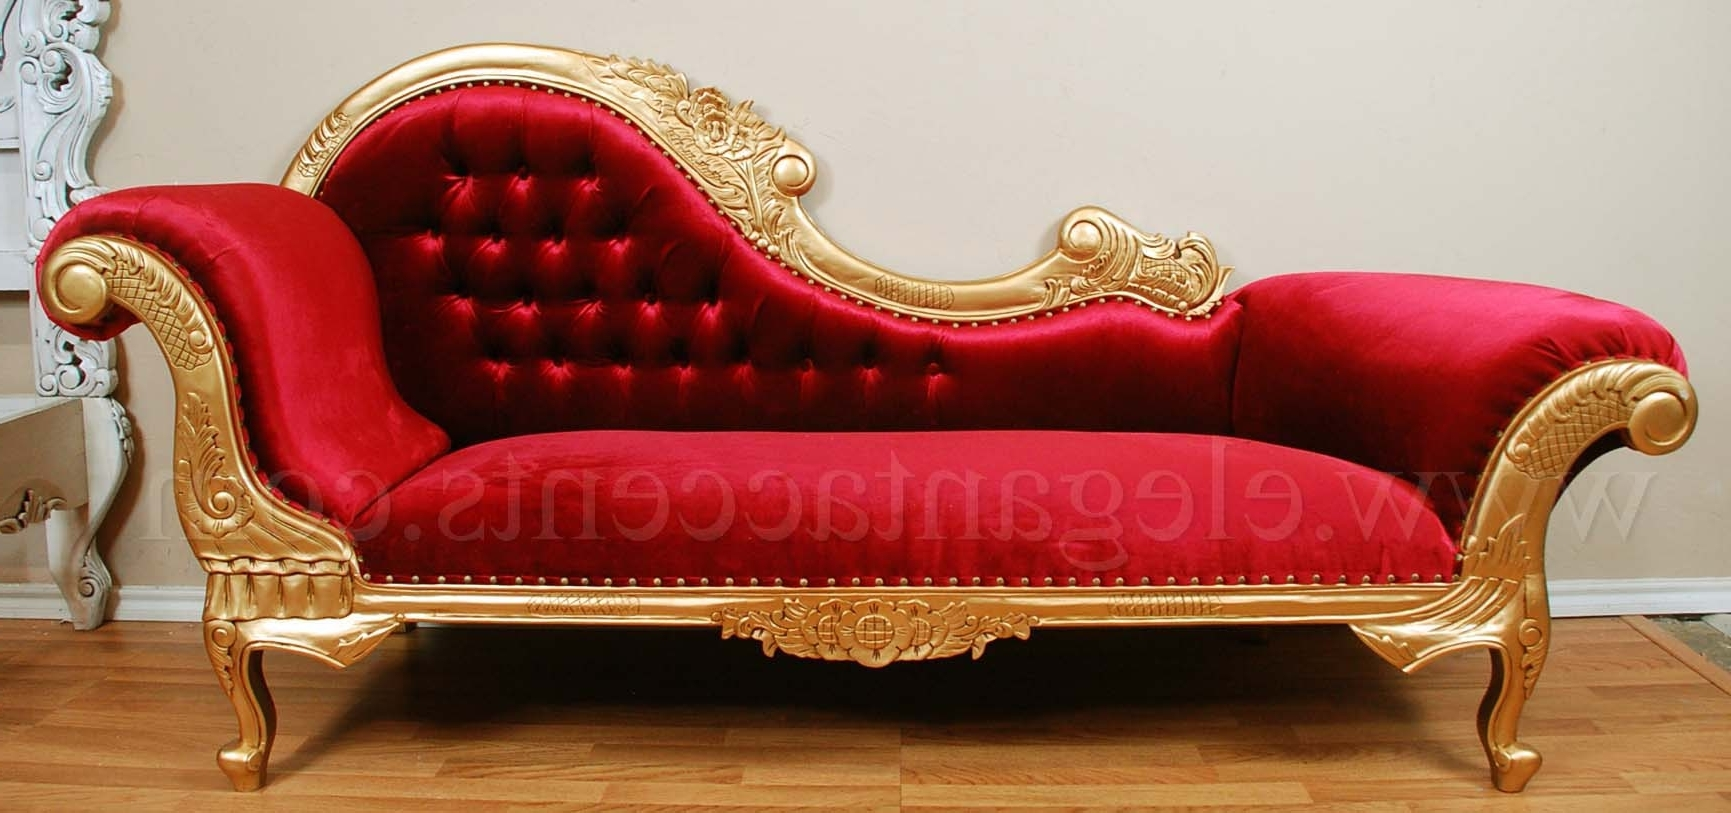 Victorian Chaises pertaining to Most Recently Released Impressive On Victorian Chaise Lounge With Victorian Chaise Gold